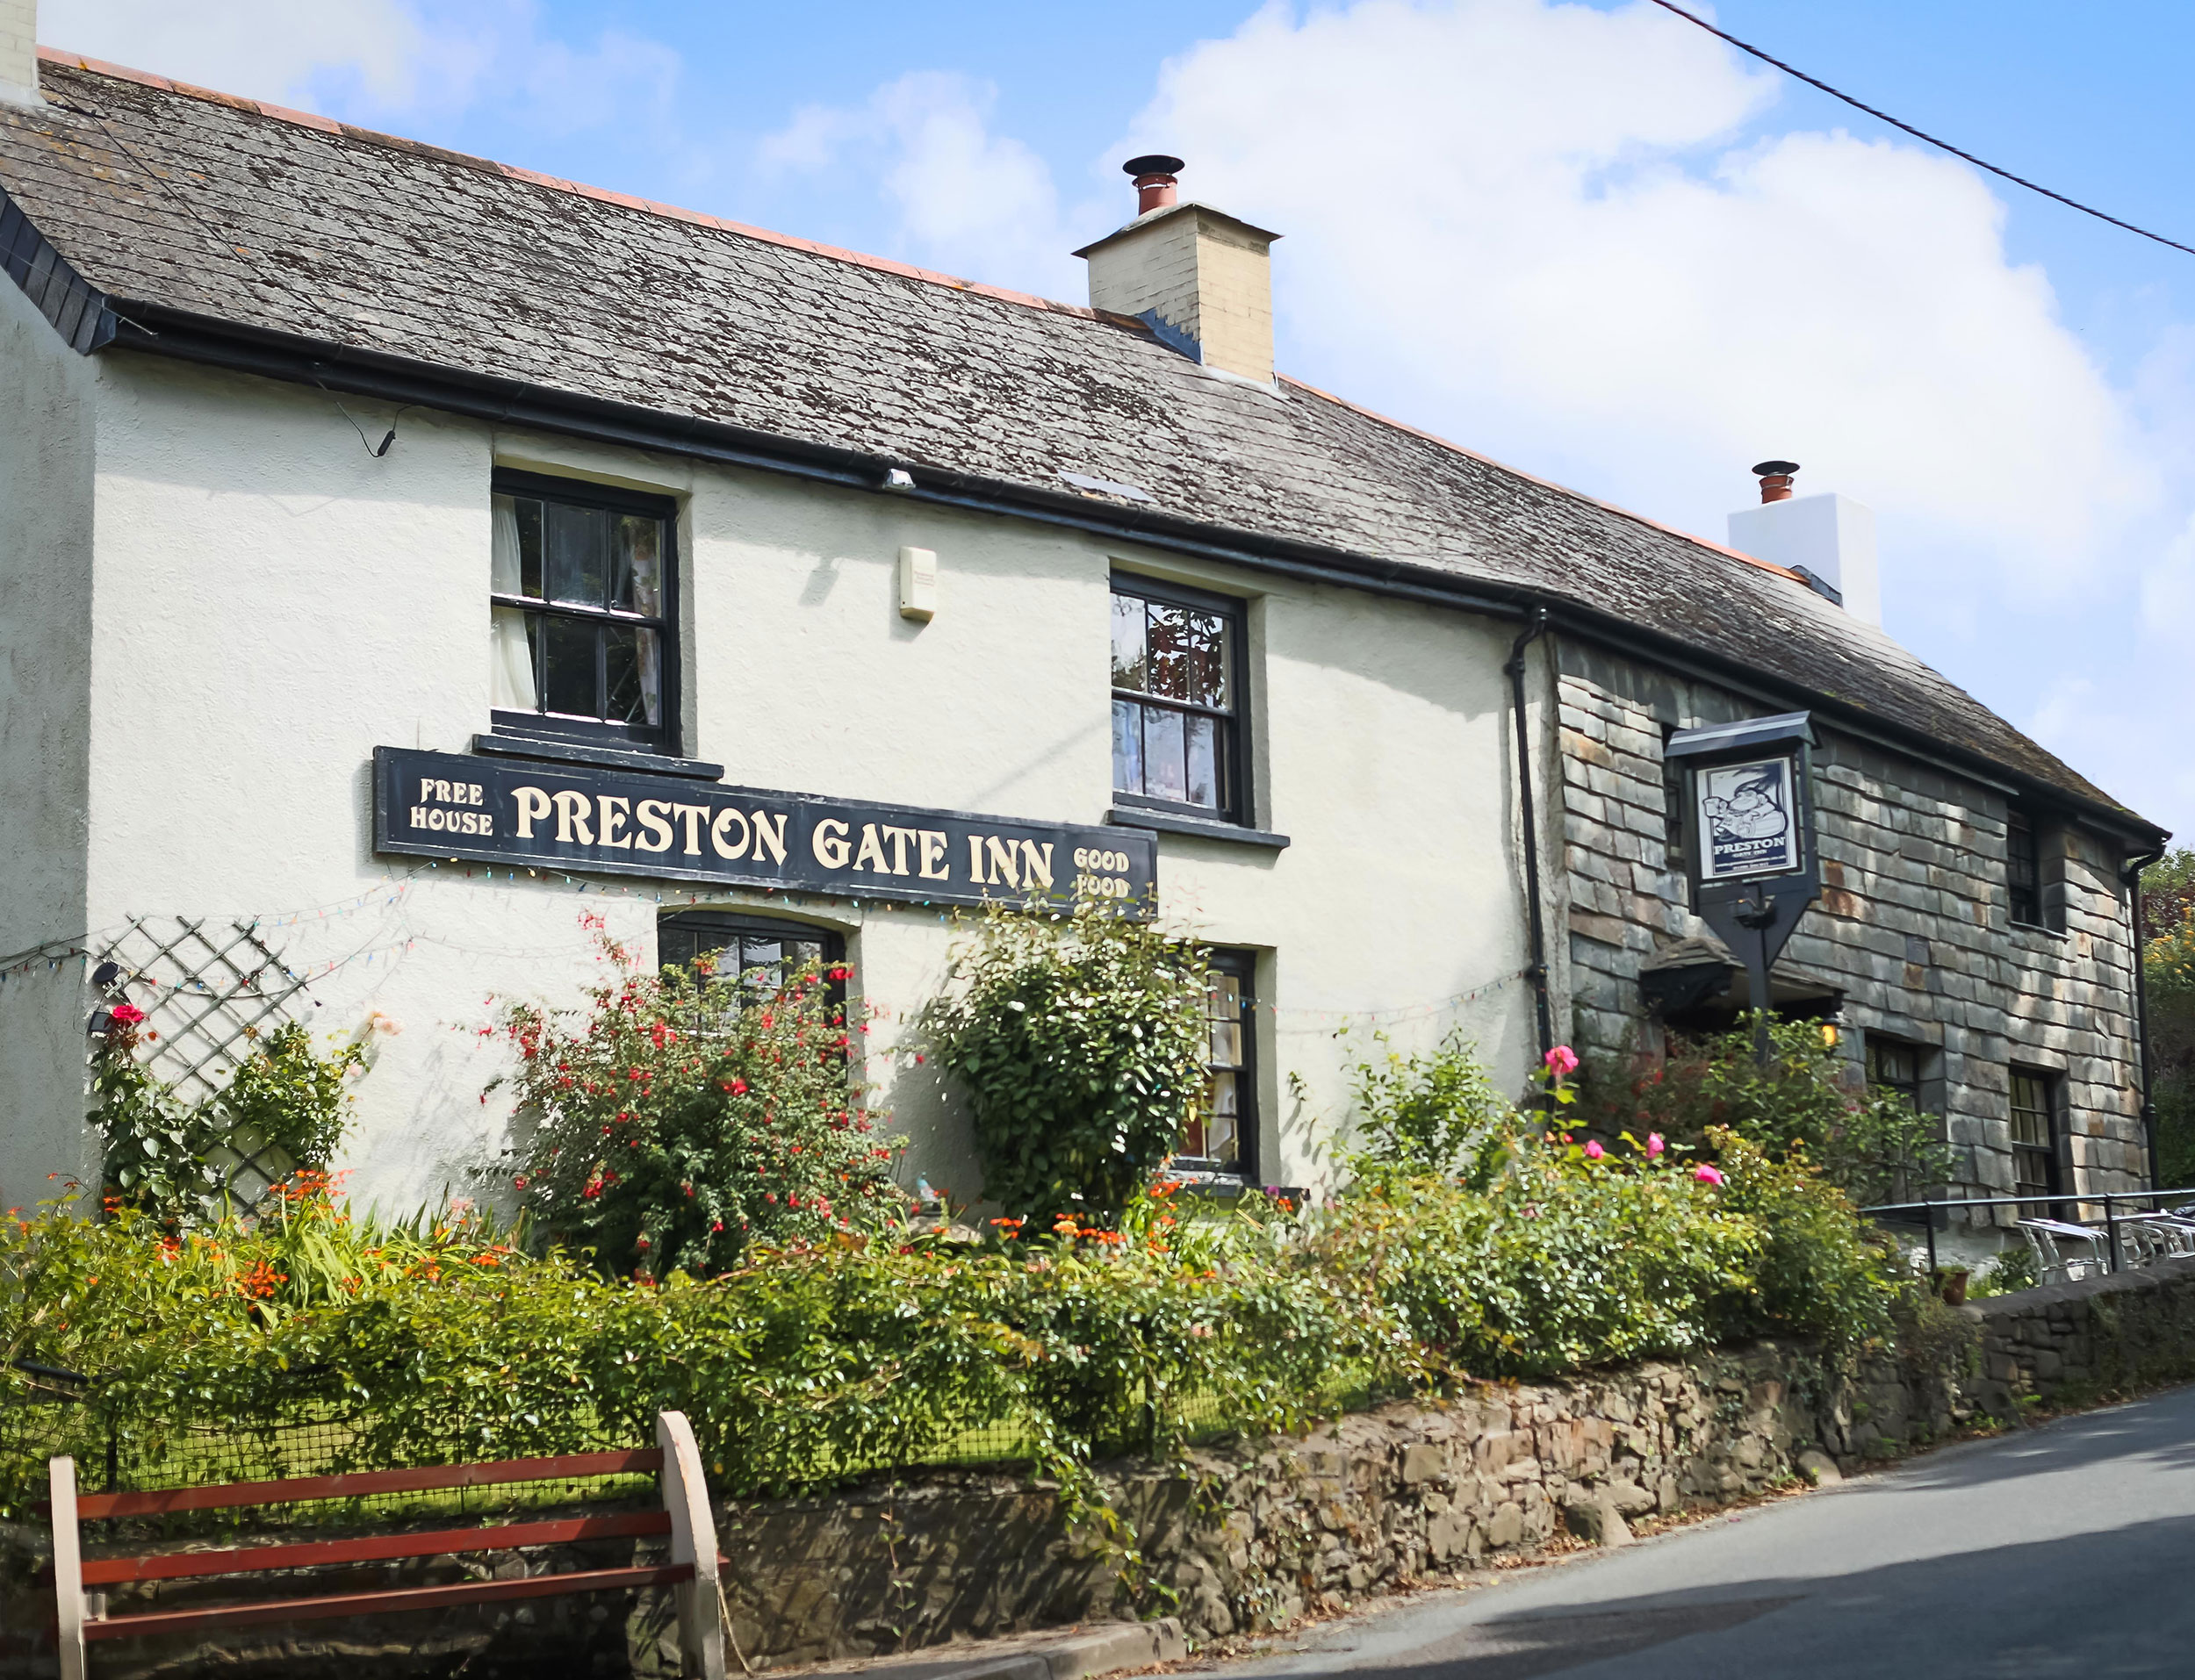 Preston Gate Inn, Poughill near Bude